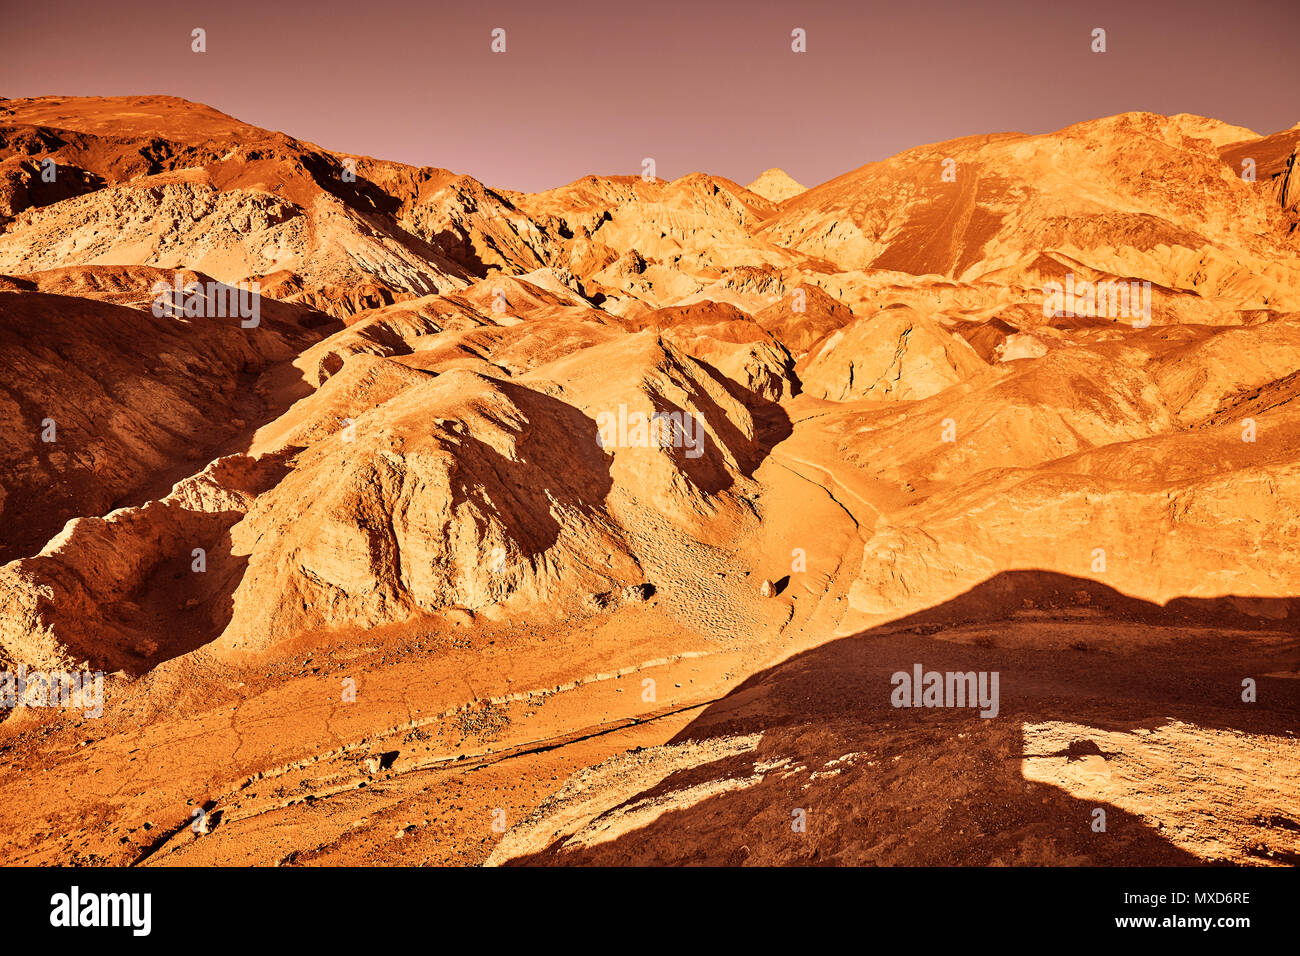 Mars-like deserted land, color toning applied, Death Valley, USA. - Stock Image